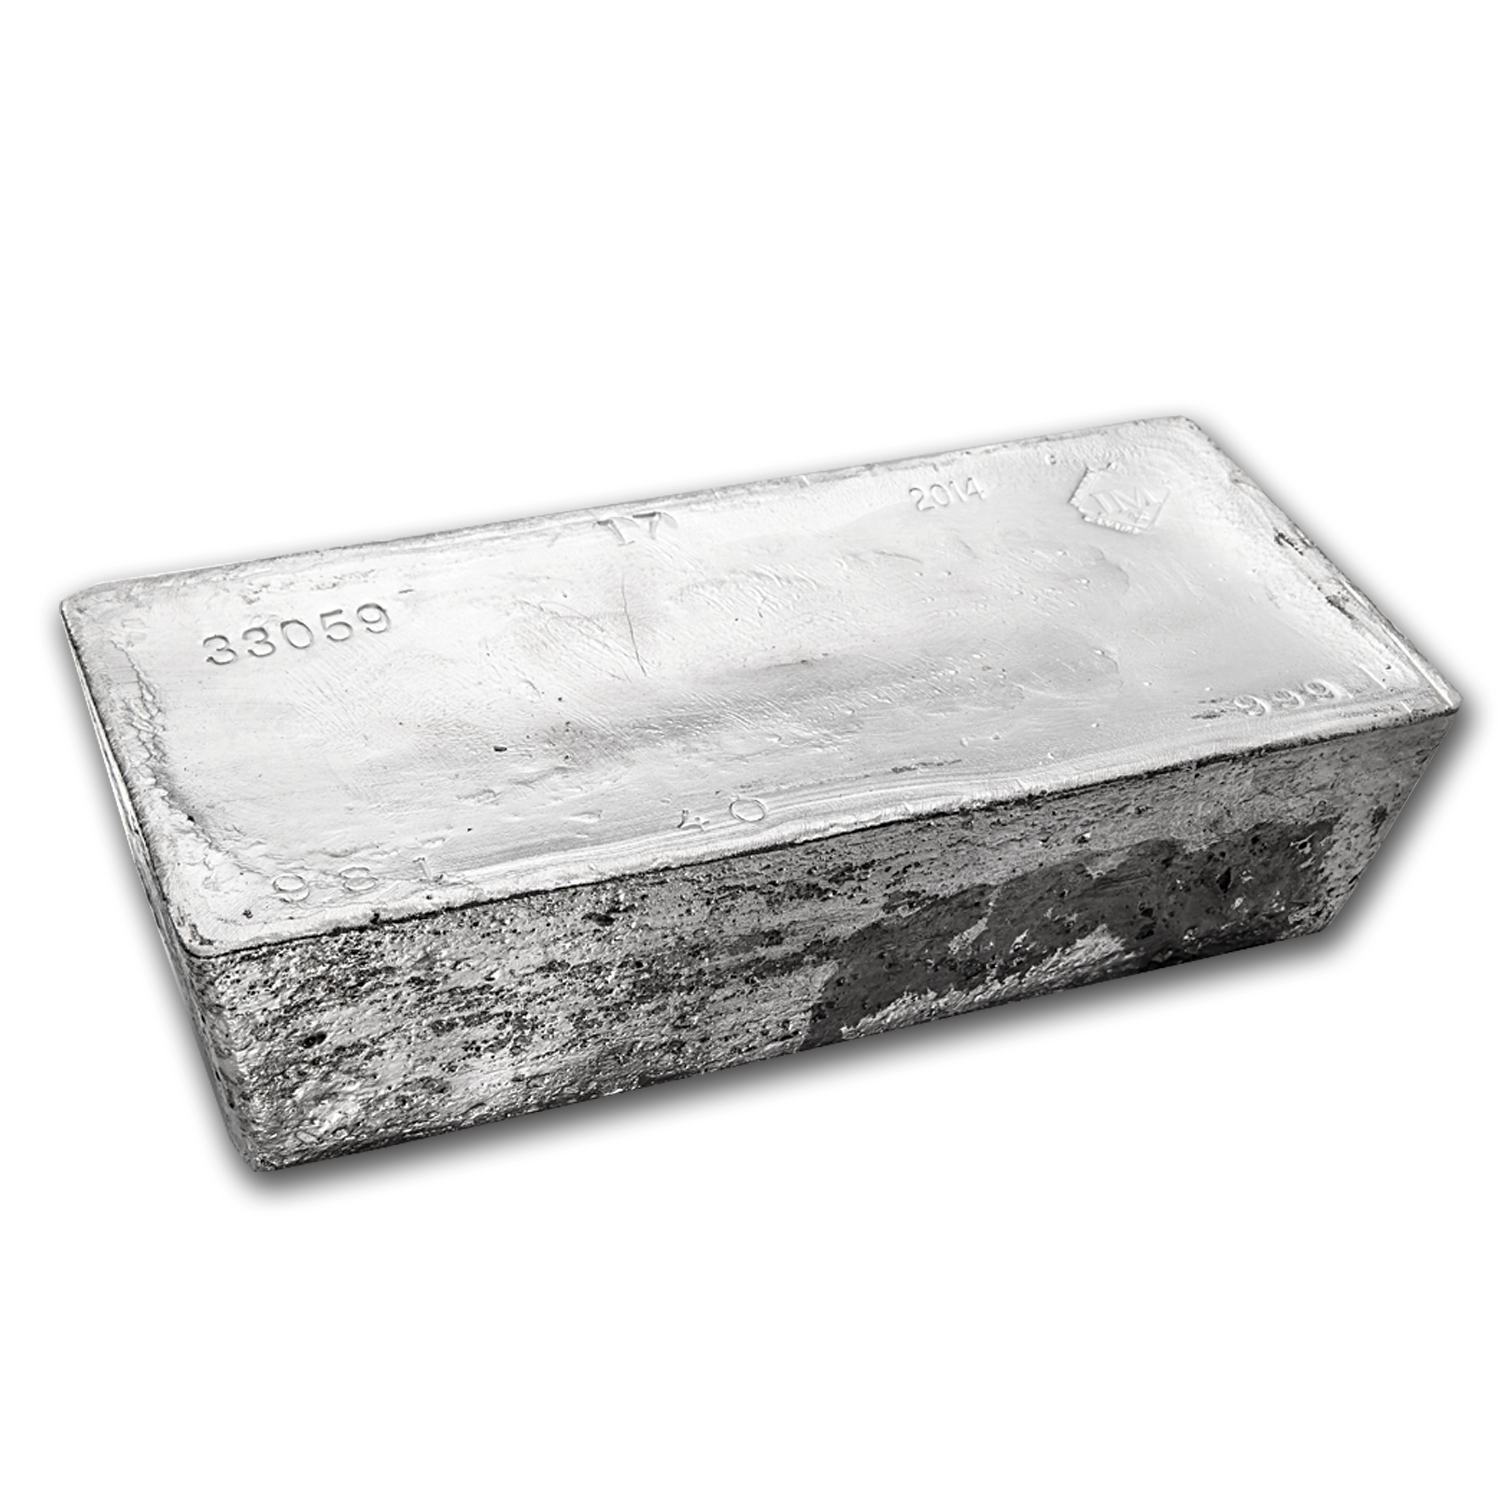 1000.00 oz Silver Bar - Johnson Matthey Bar